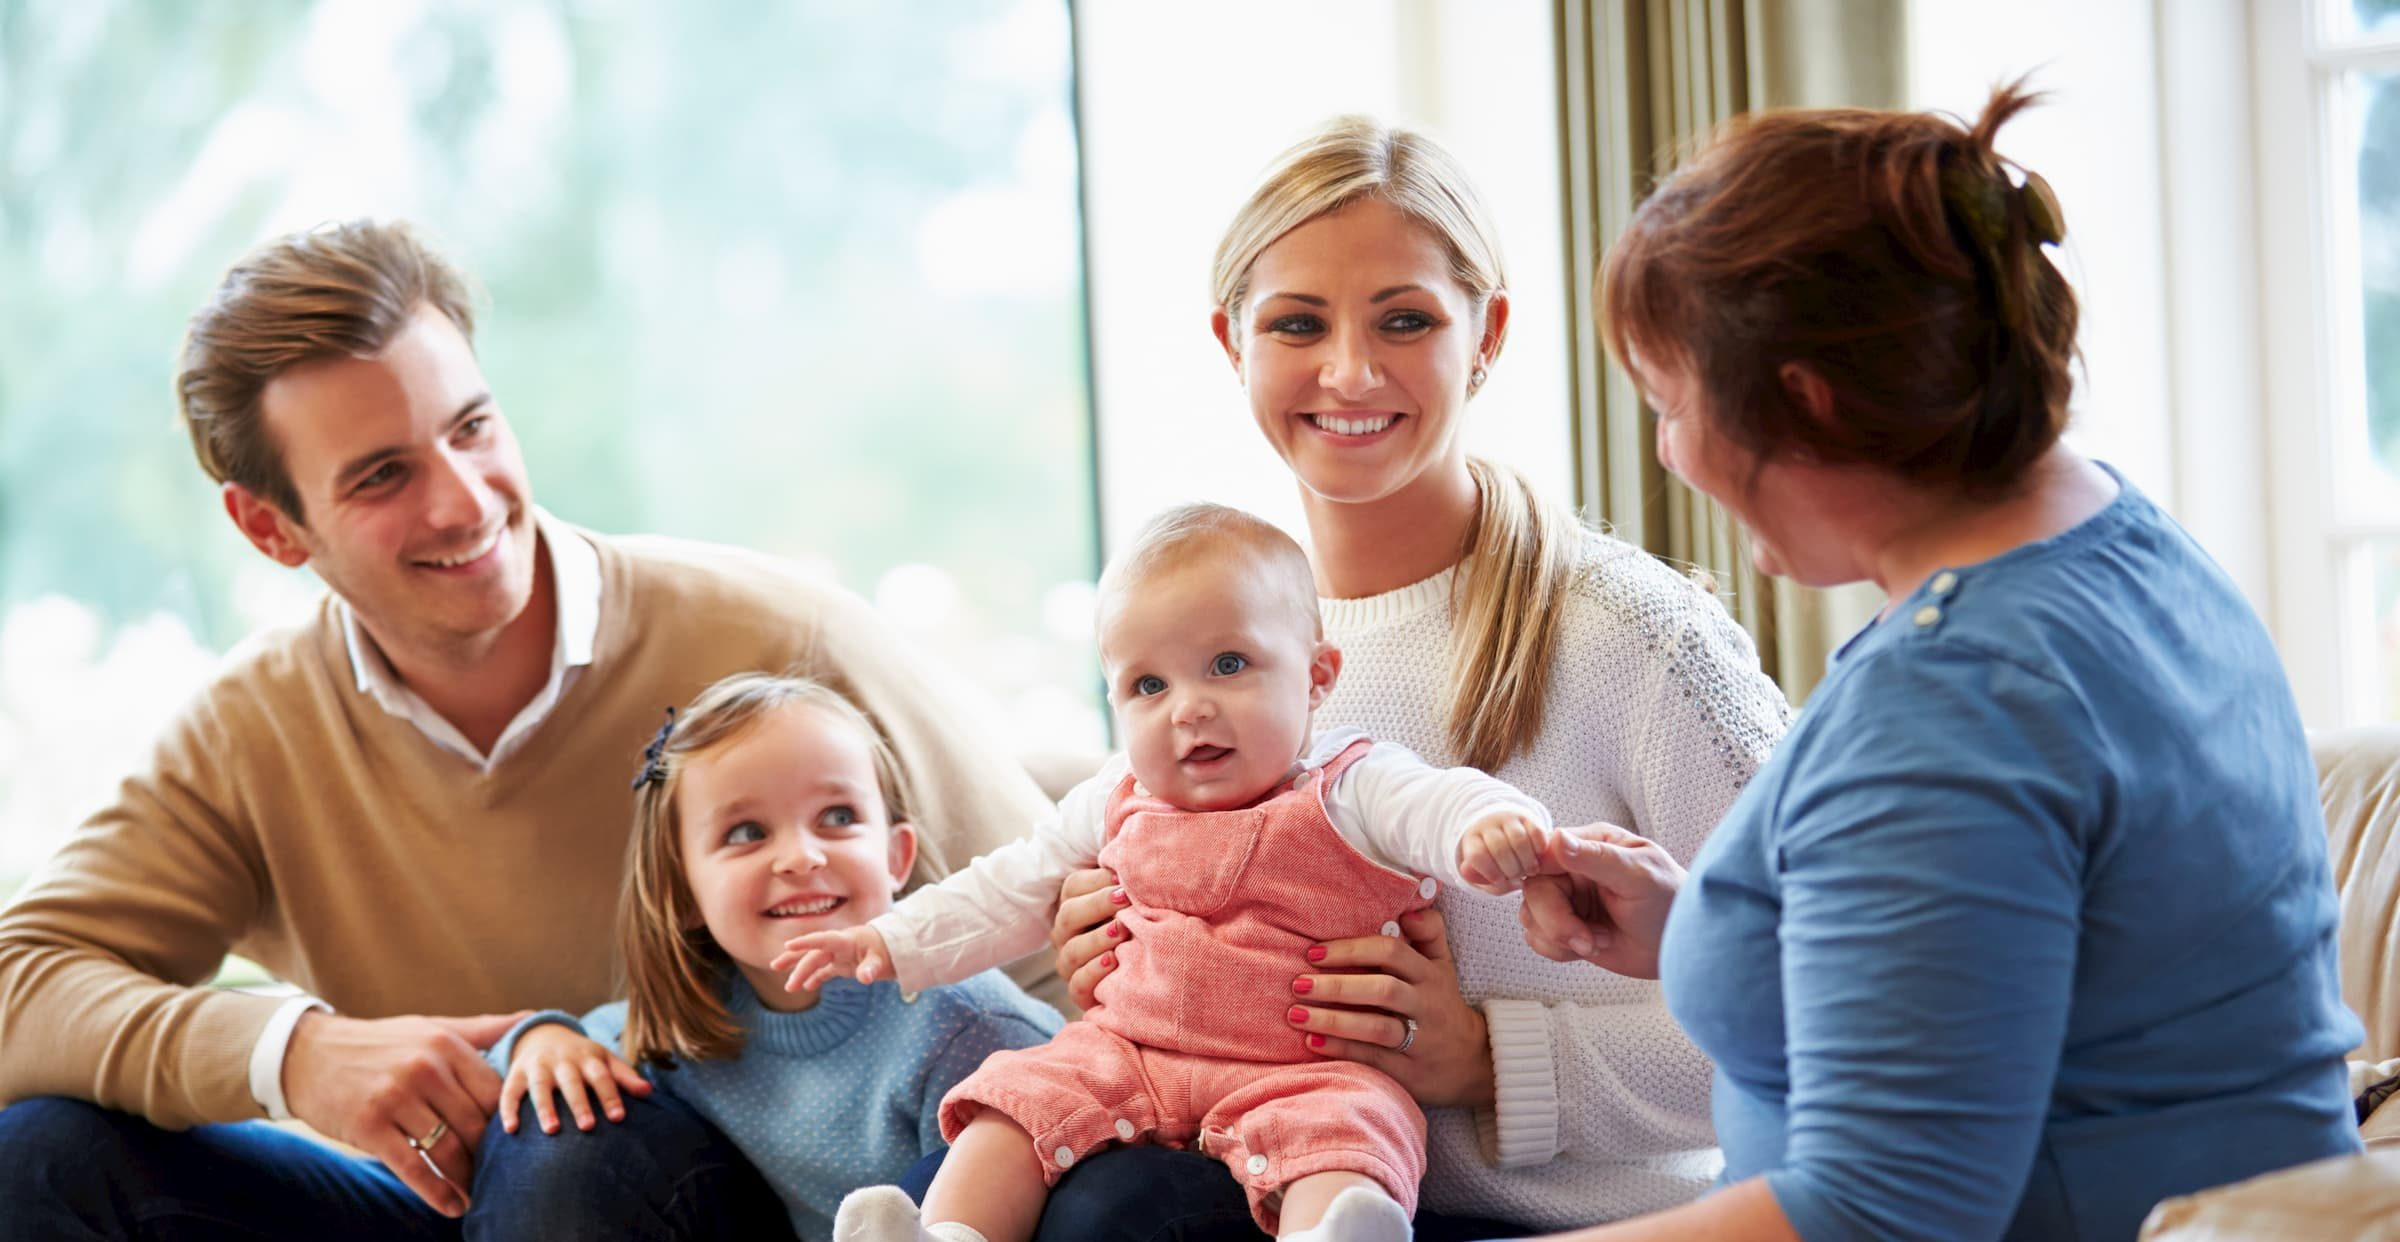 Health Visitor Talking To Family With Young Baby